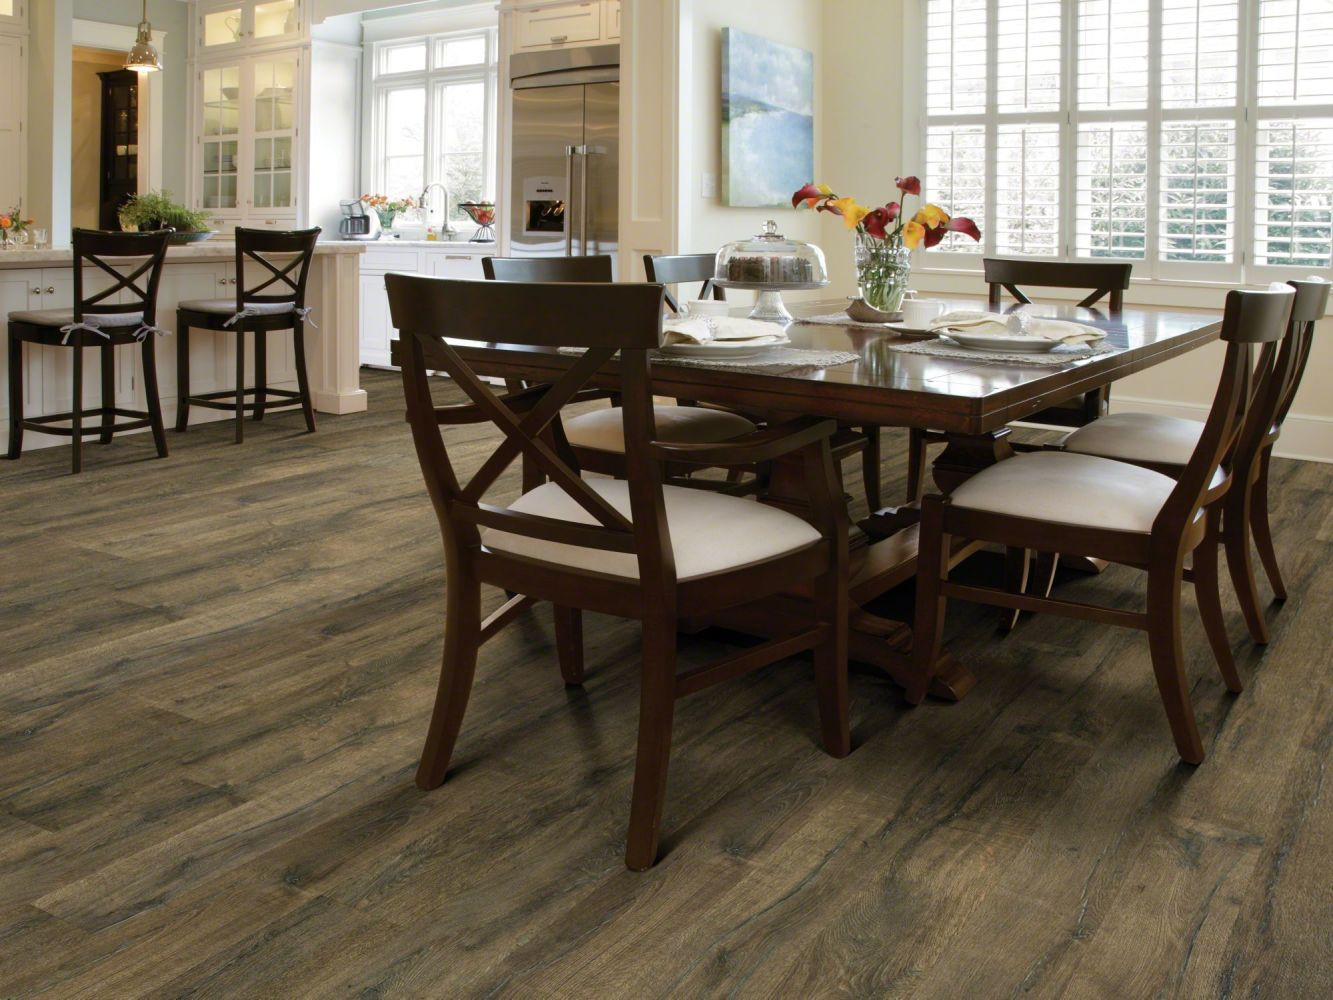 Shaw Floors Resilient Residential Alto HD Plus Vercelli 00799_2731V